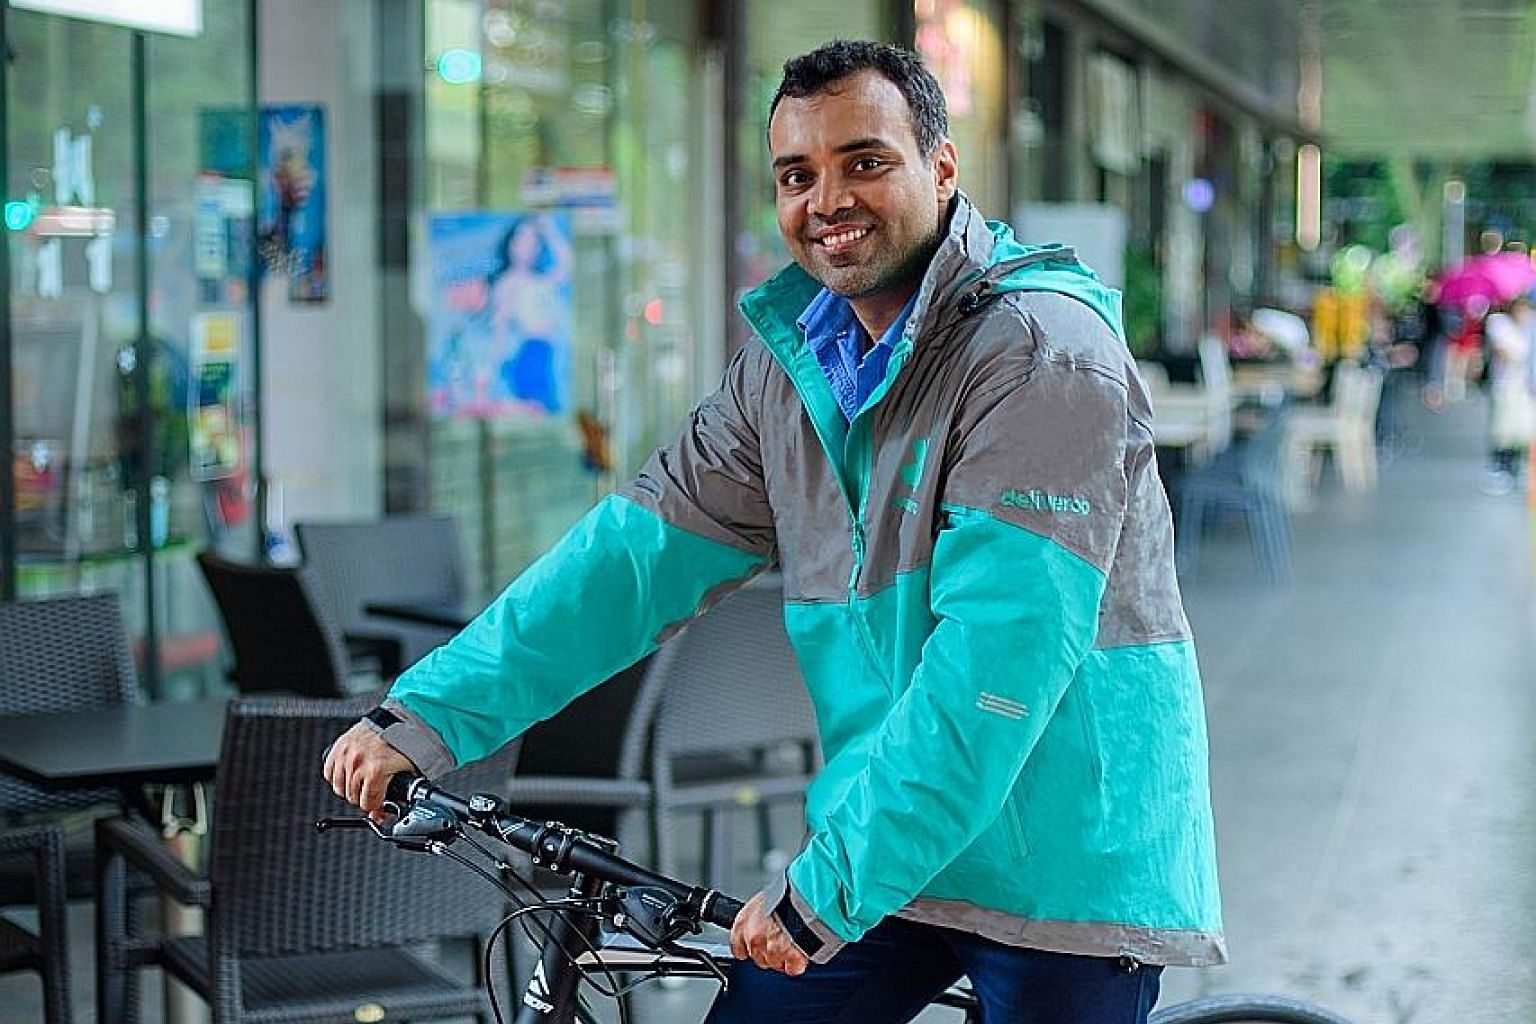 Deliveroo's general manager Siddharth Shanker says its kitchen will feature cuisines currently missing in the Katong area.